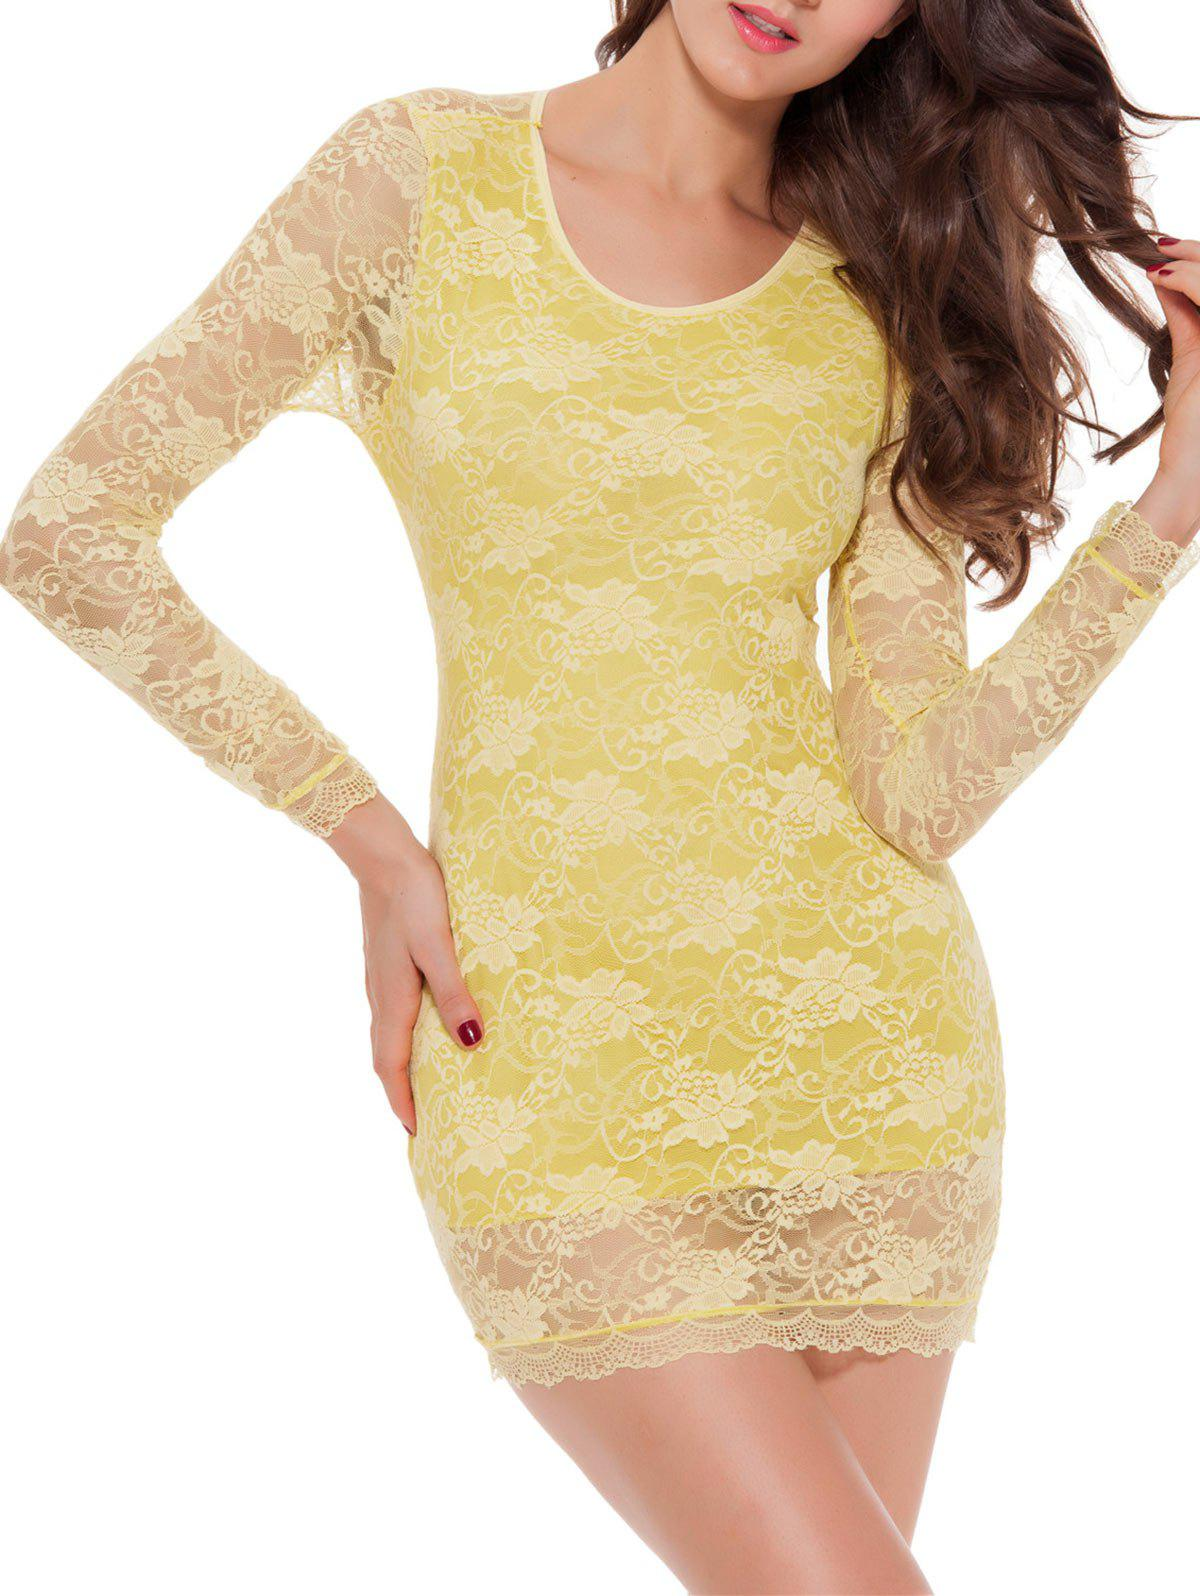 Lace Long Sleeve Bowknot Sleep Dress - YELLOW XL